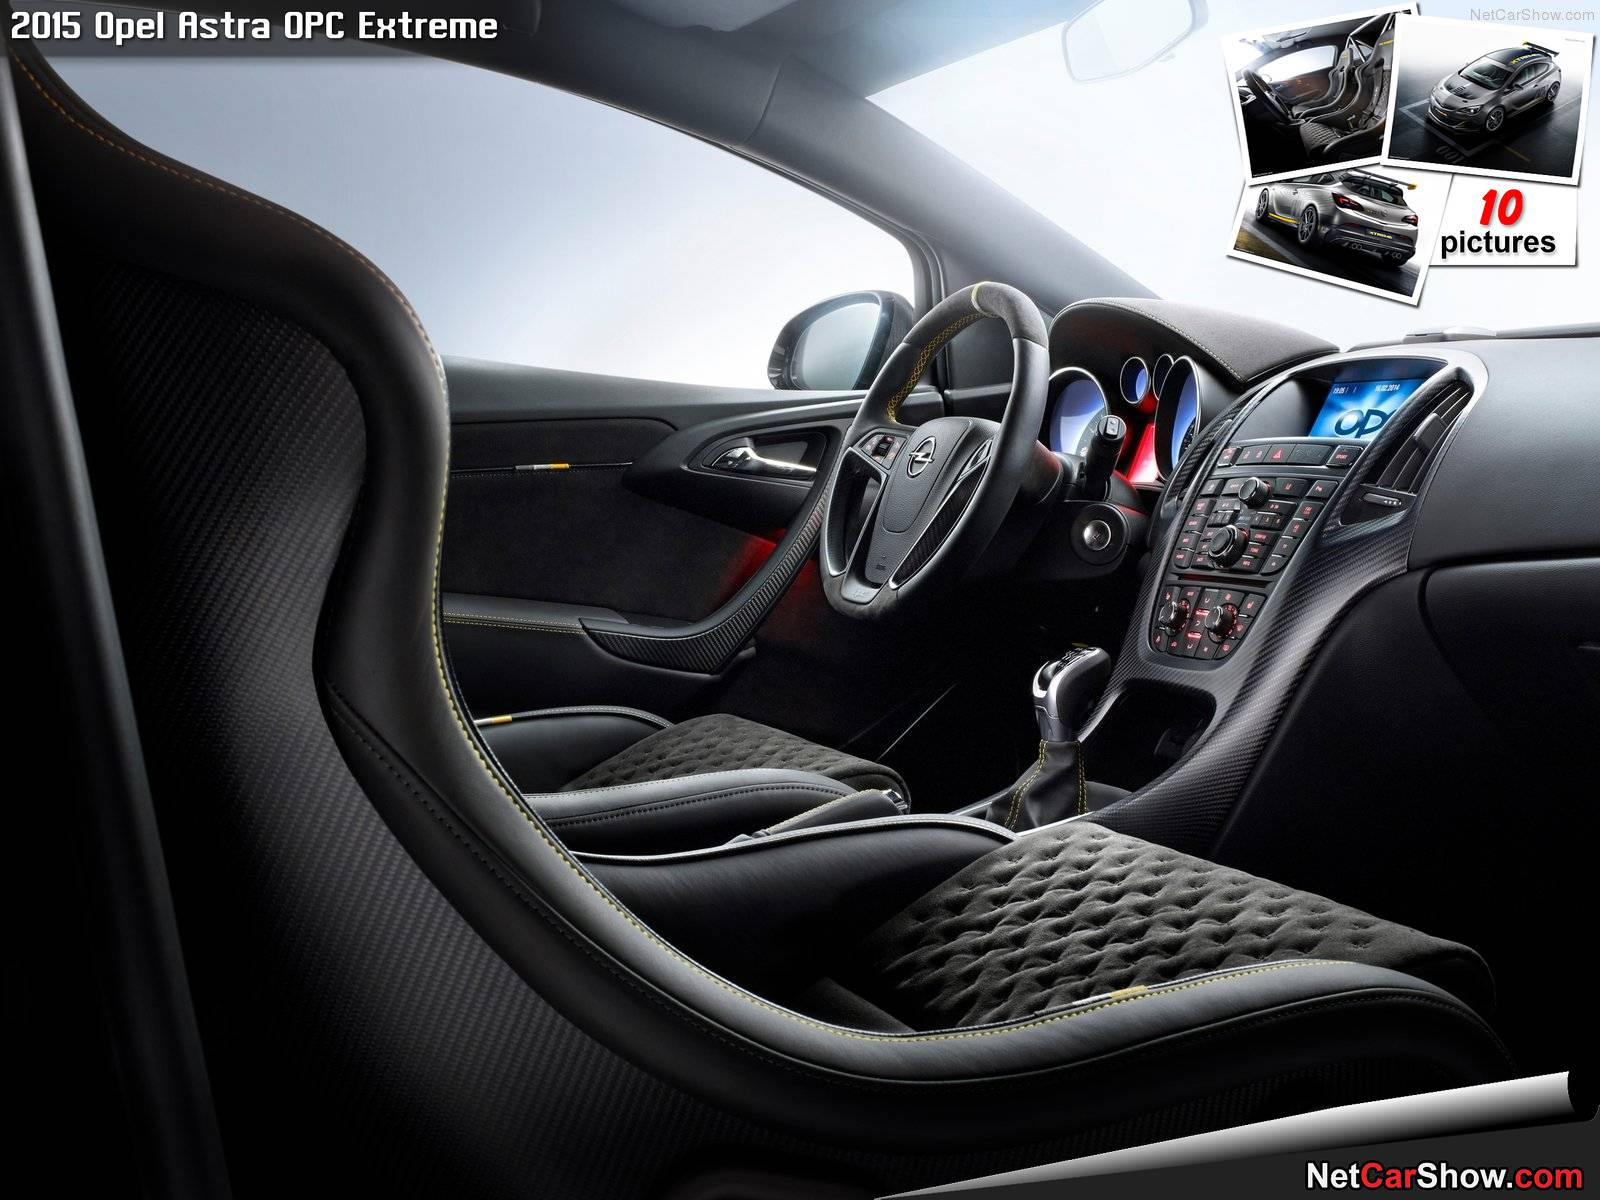 Opel Astra OPC Extreme photo 109714